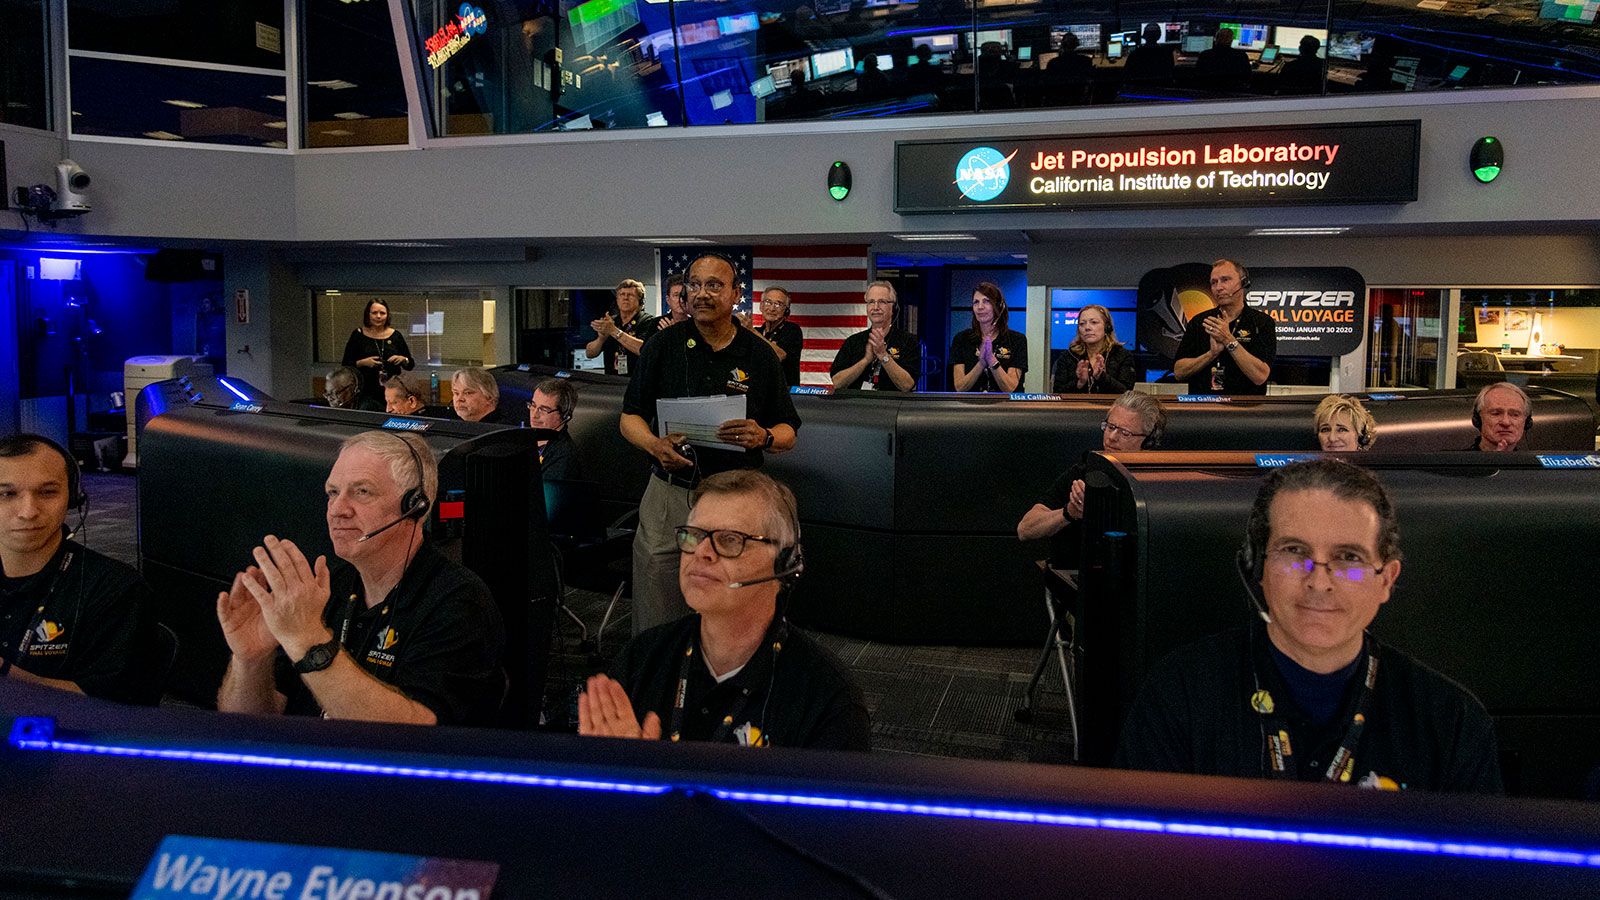 Men and women applauding in mission control as Spitzer's mission is declared over.